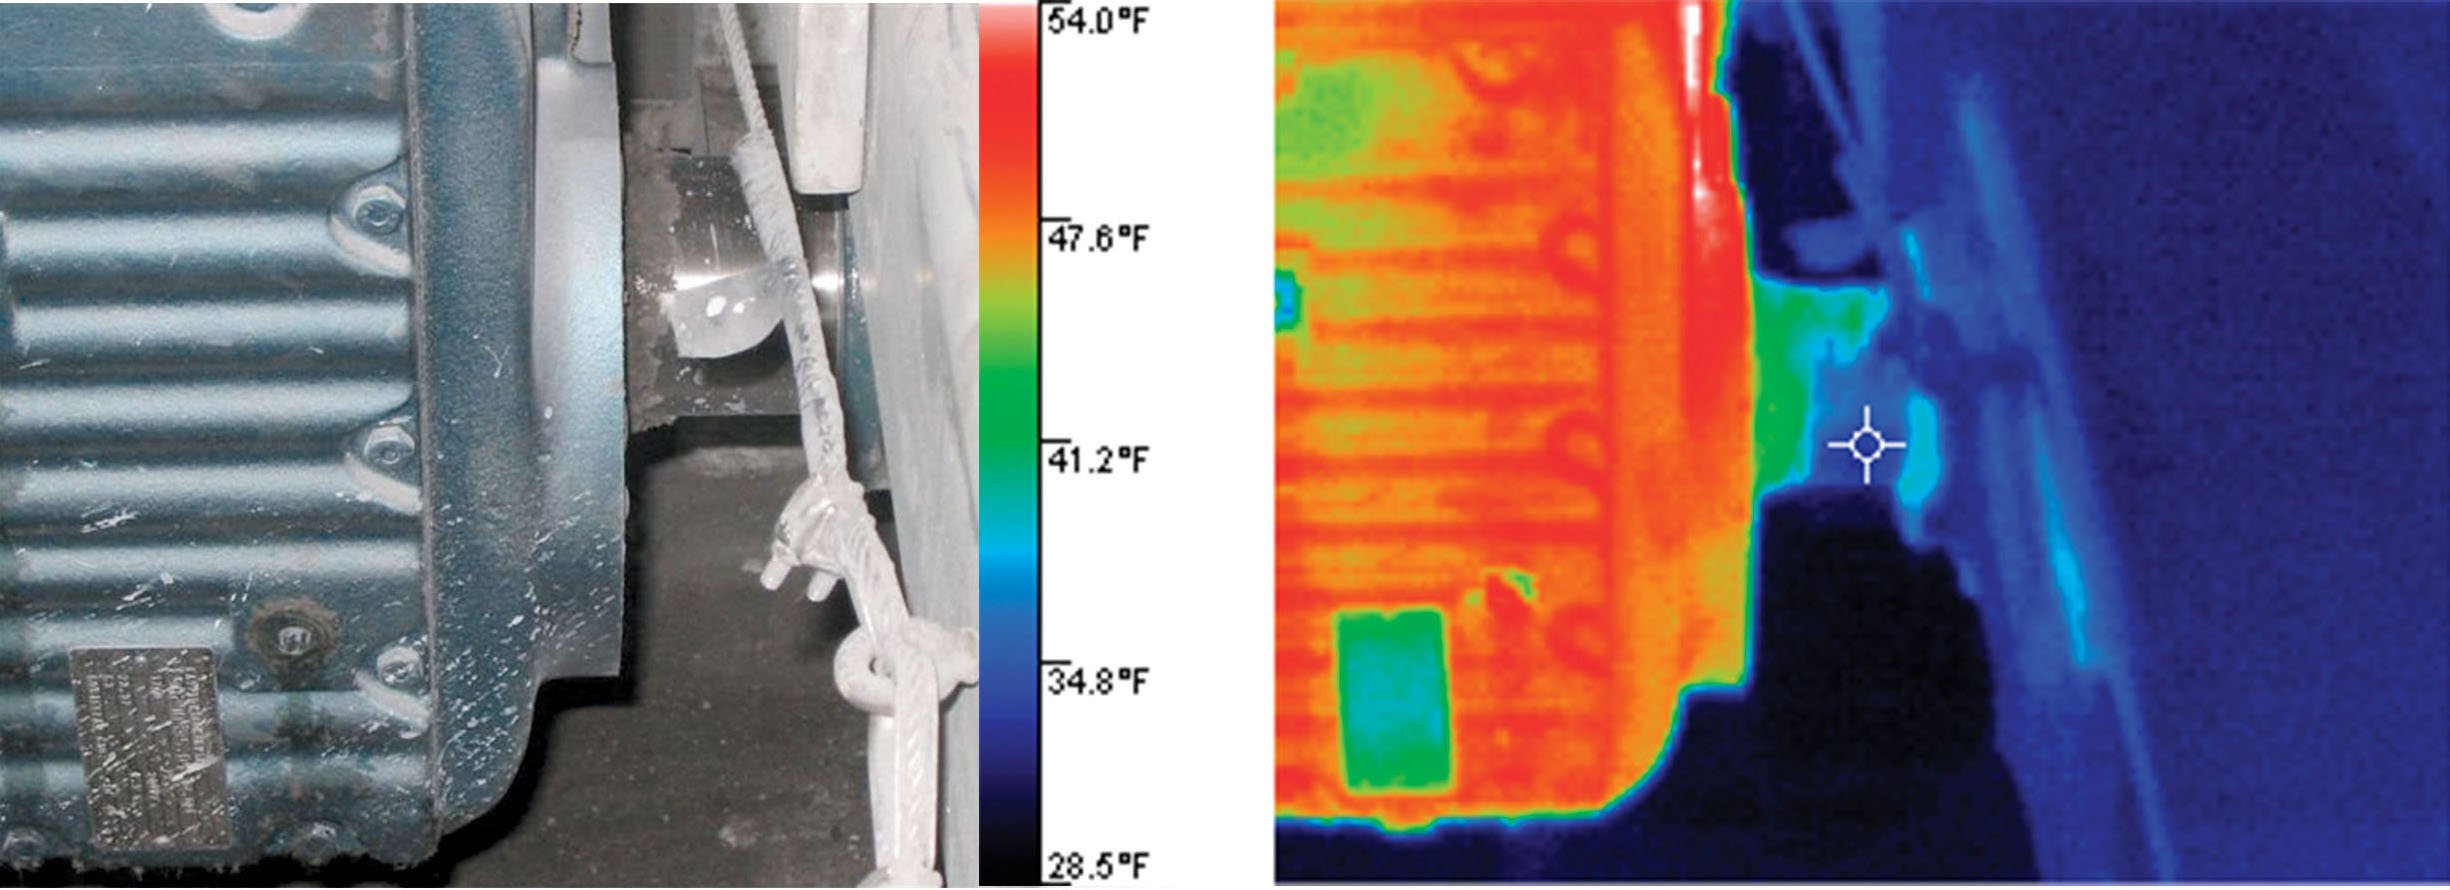 Properly functioning bearings show cool temperature measurements in this thermal image